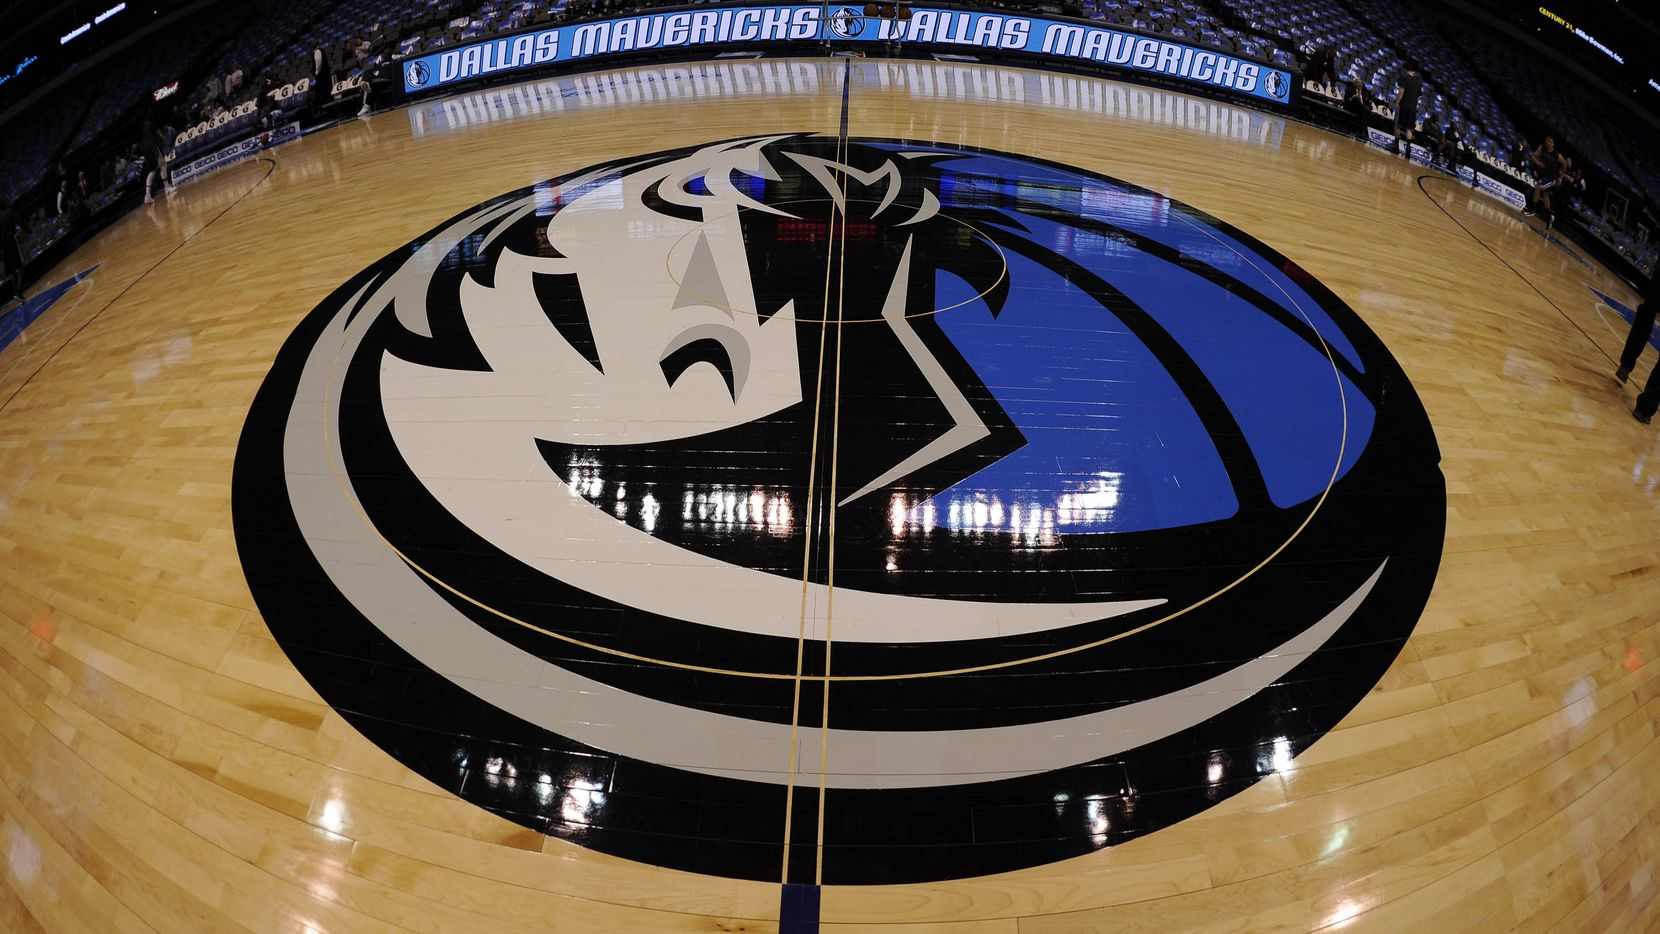 Feb 13, 2013; Dallas, TX, USA; A general view of the Dallas Mavericks logo at center court before the game between the Mavericks and the Sacramento Kings at the American Airlines Center.